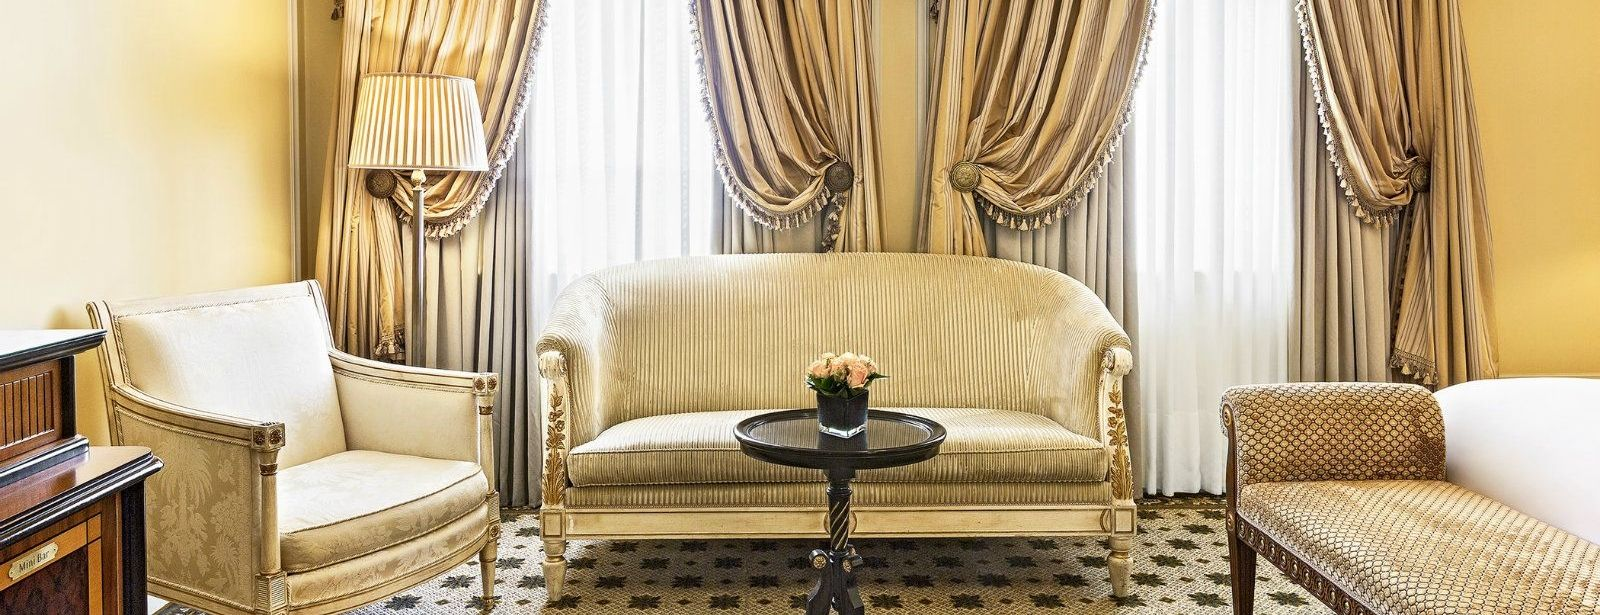 Junior Suite living room at Hotel Grande Bretagne, a Luxury Collection Hotel Athens